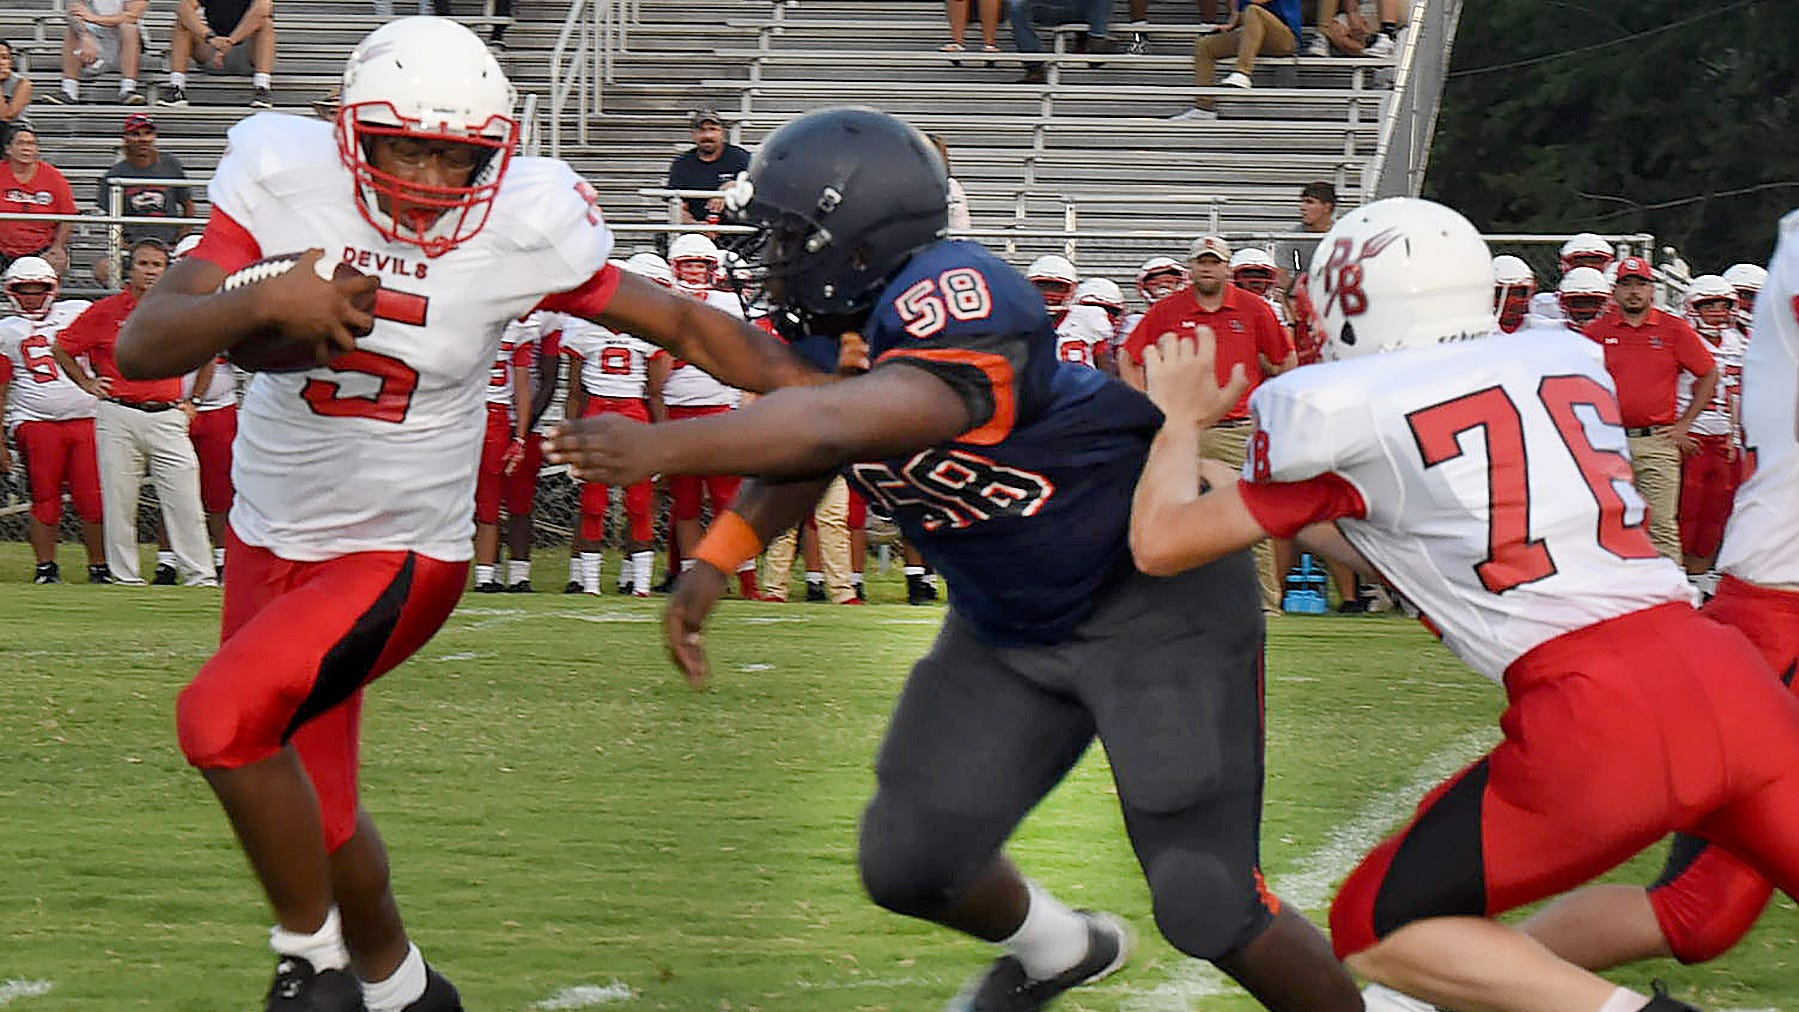 Opelousas, Port Barre, Eunice JV come away with jamboree wins